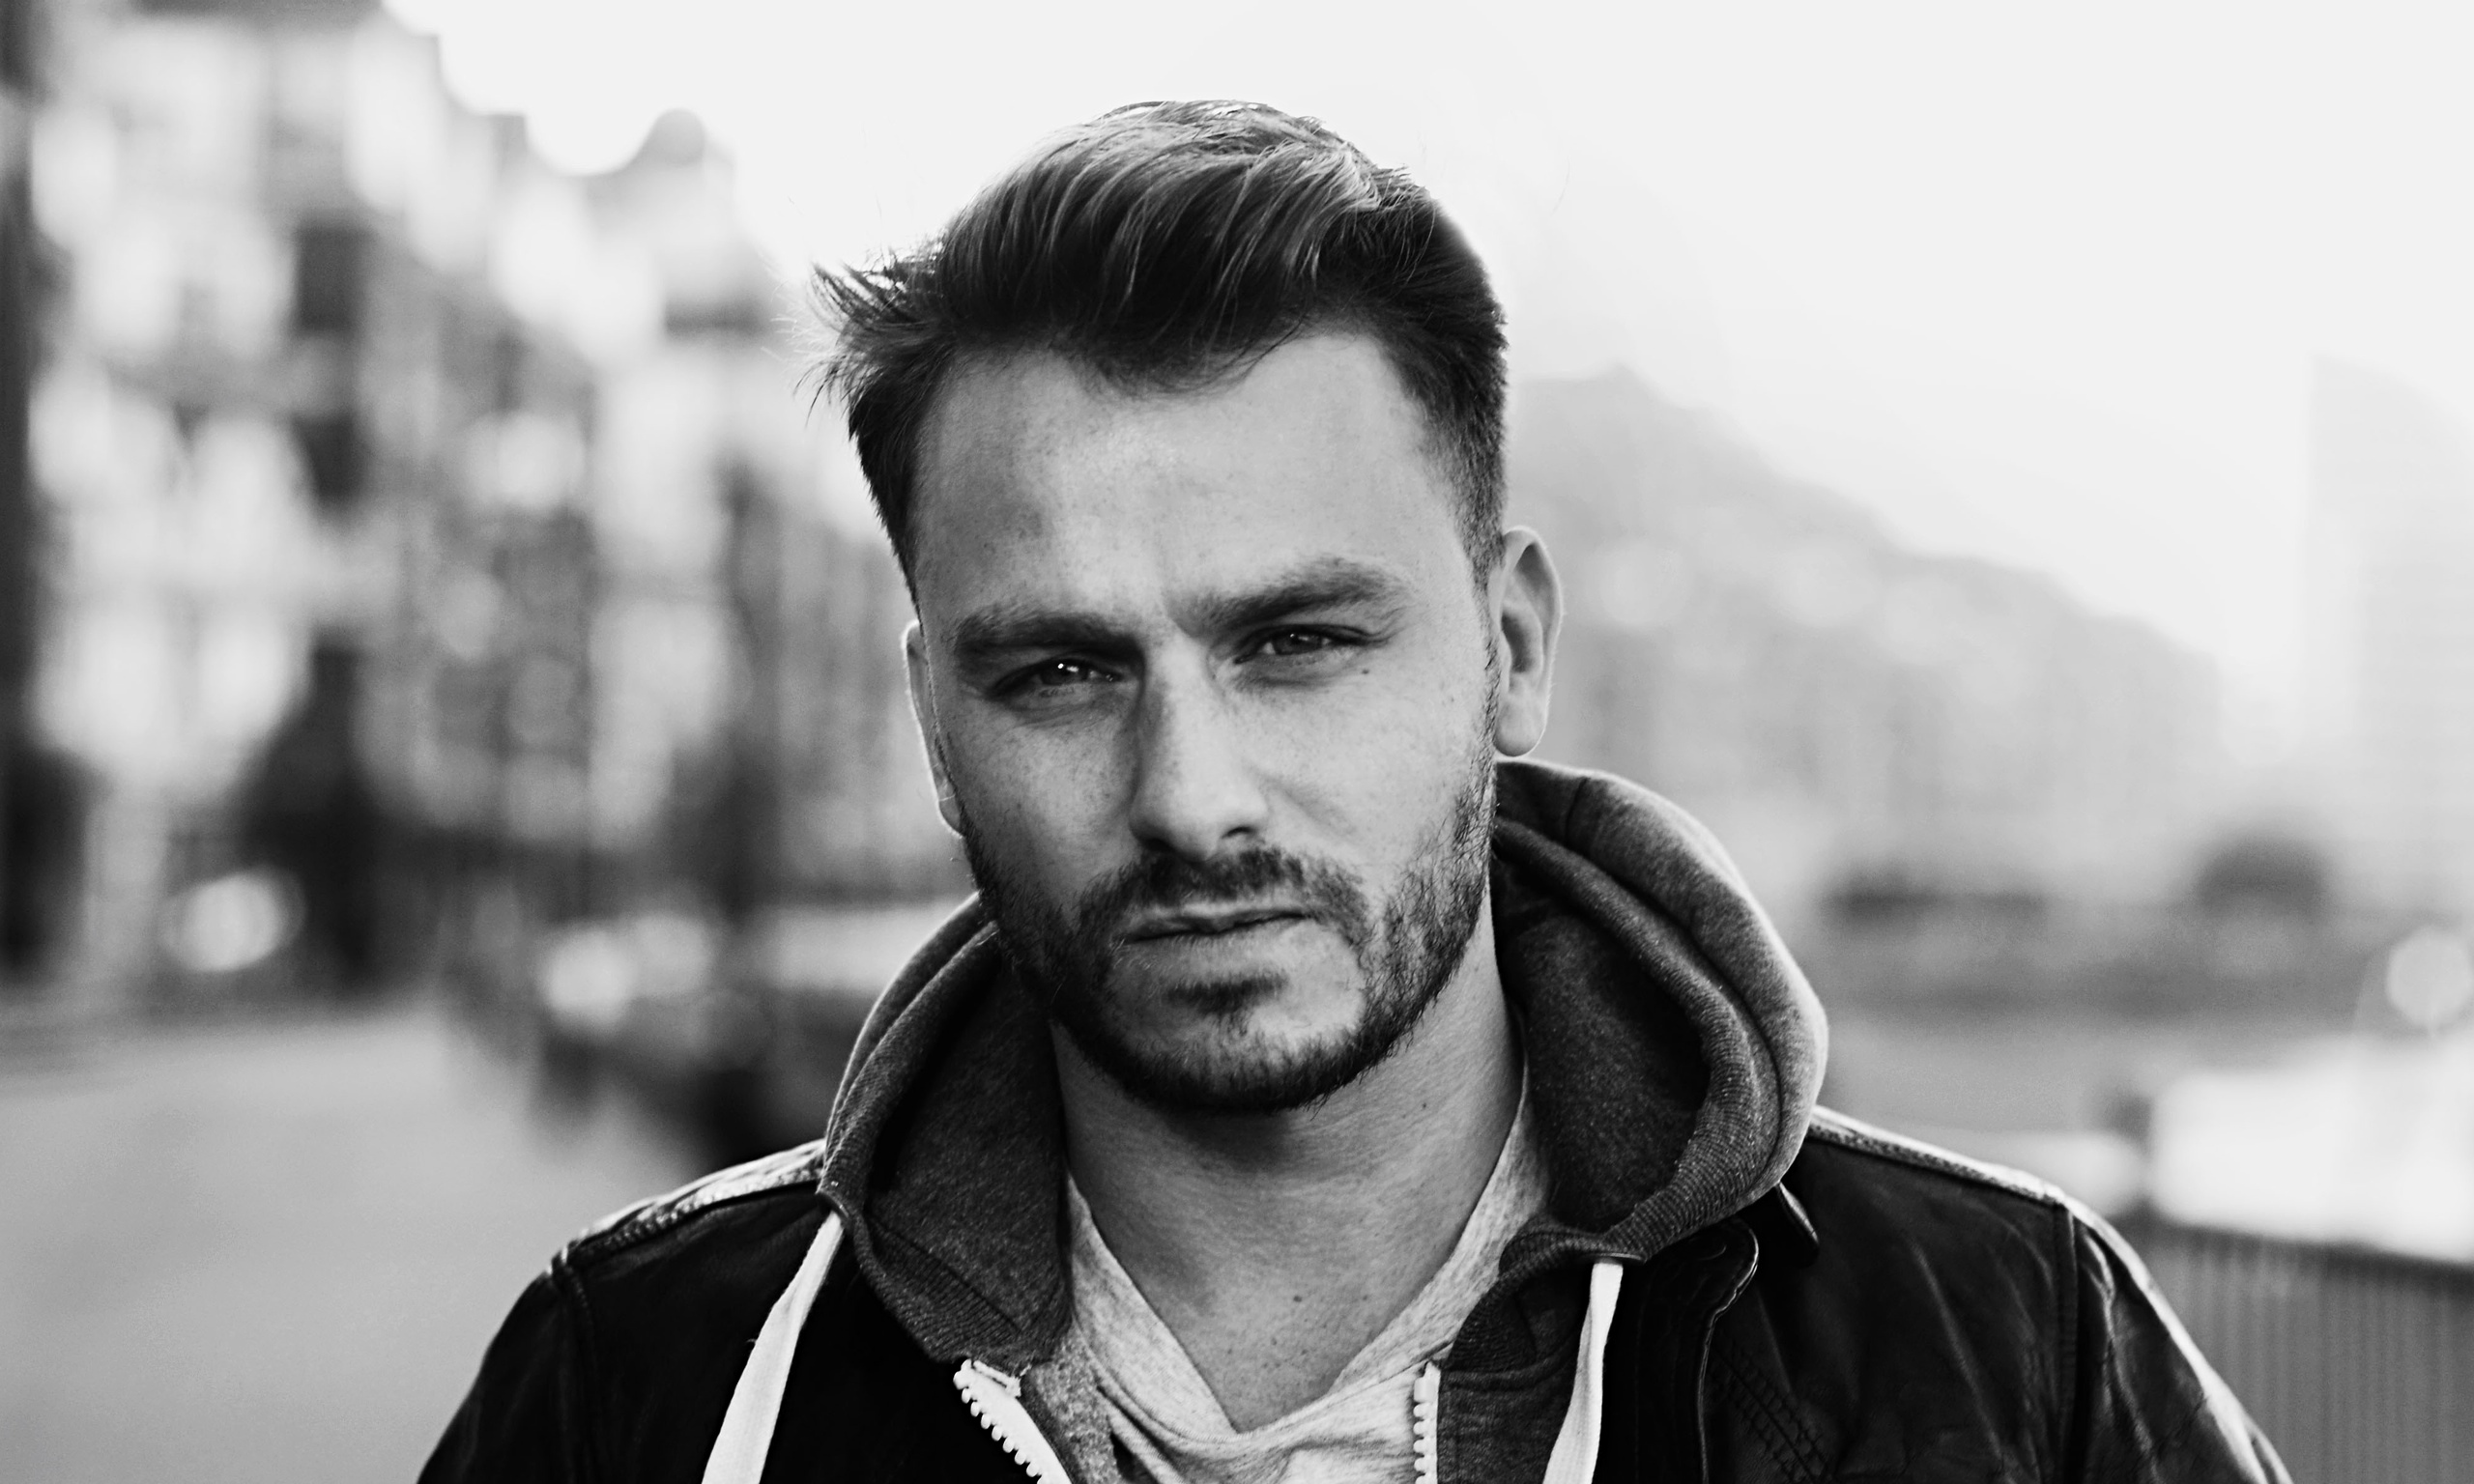 Dapper Laughs aka Daniel O'Reilly